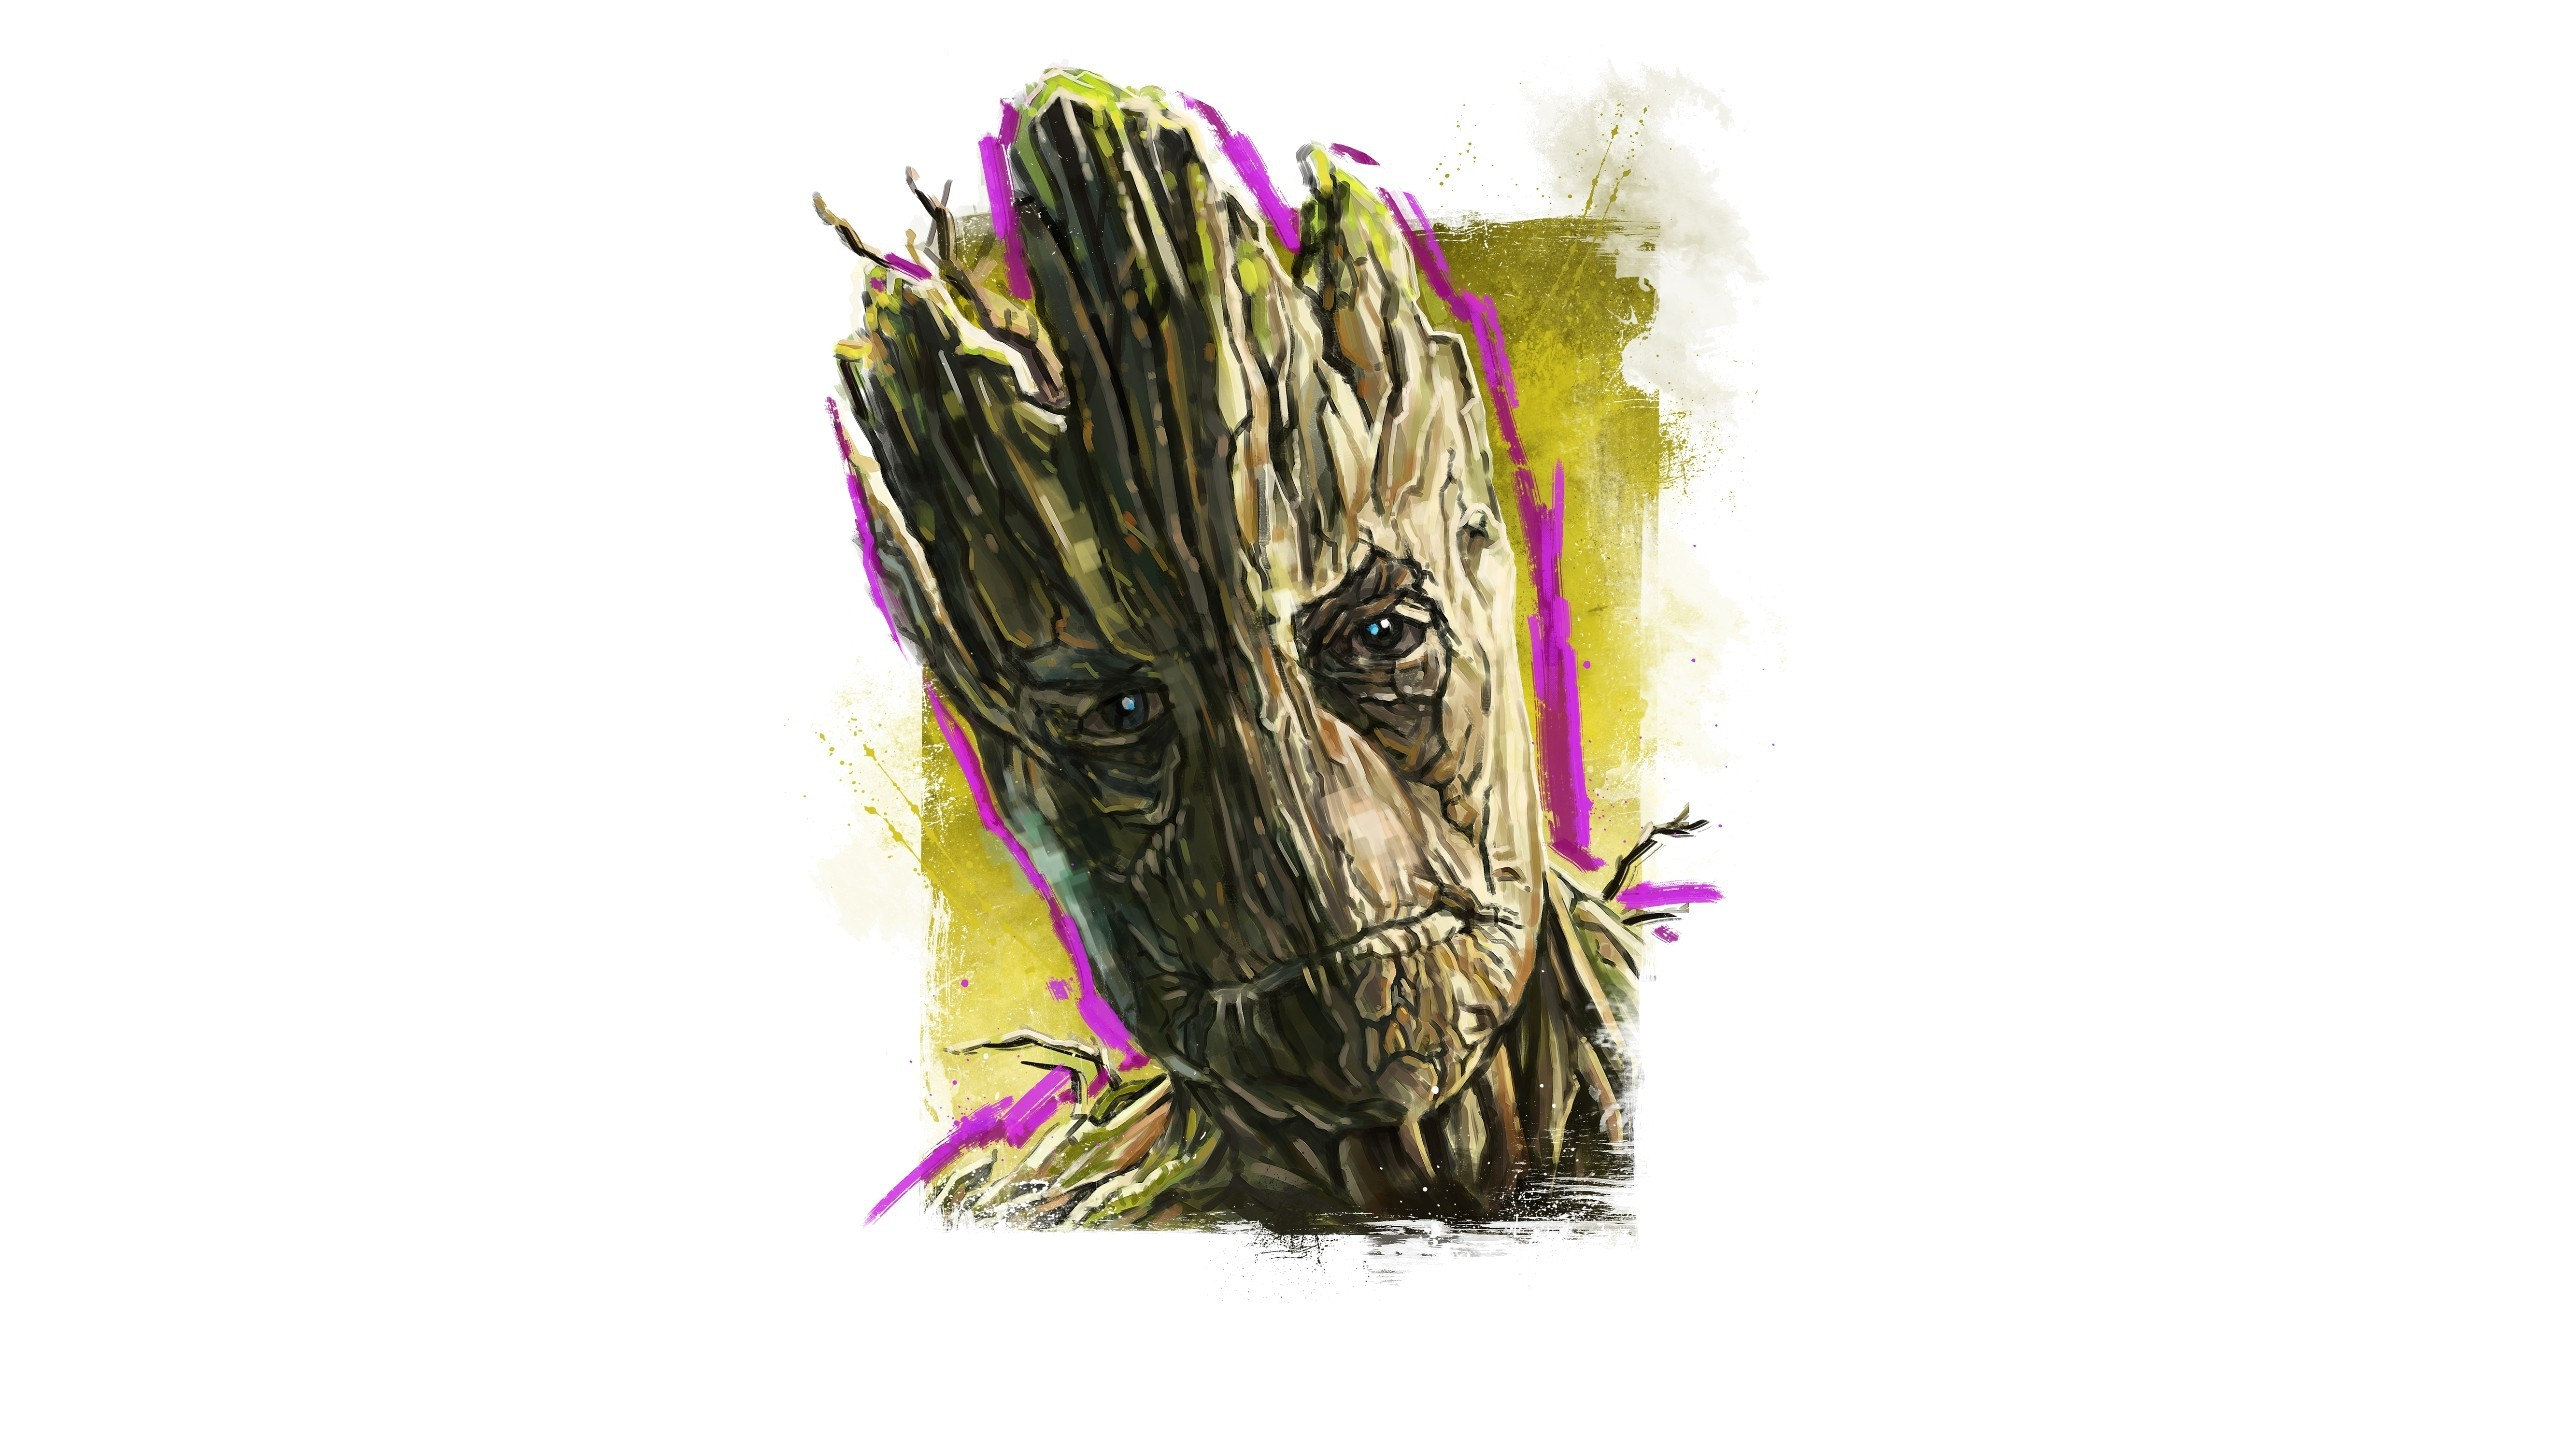 Groot Images